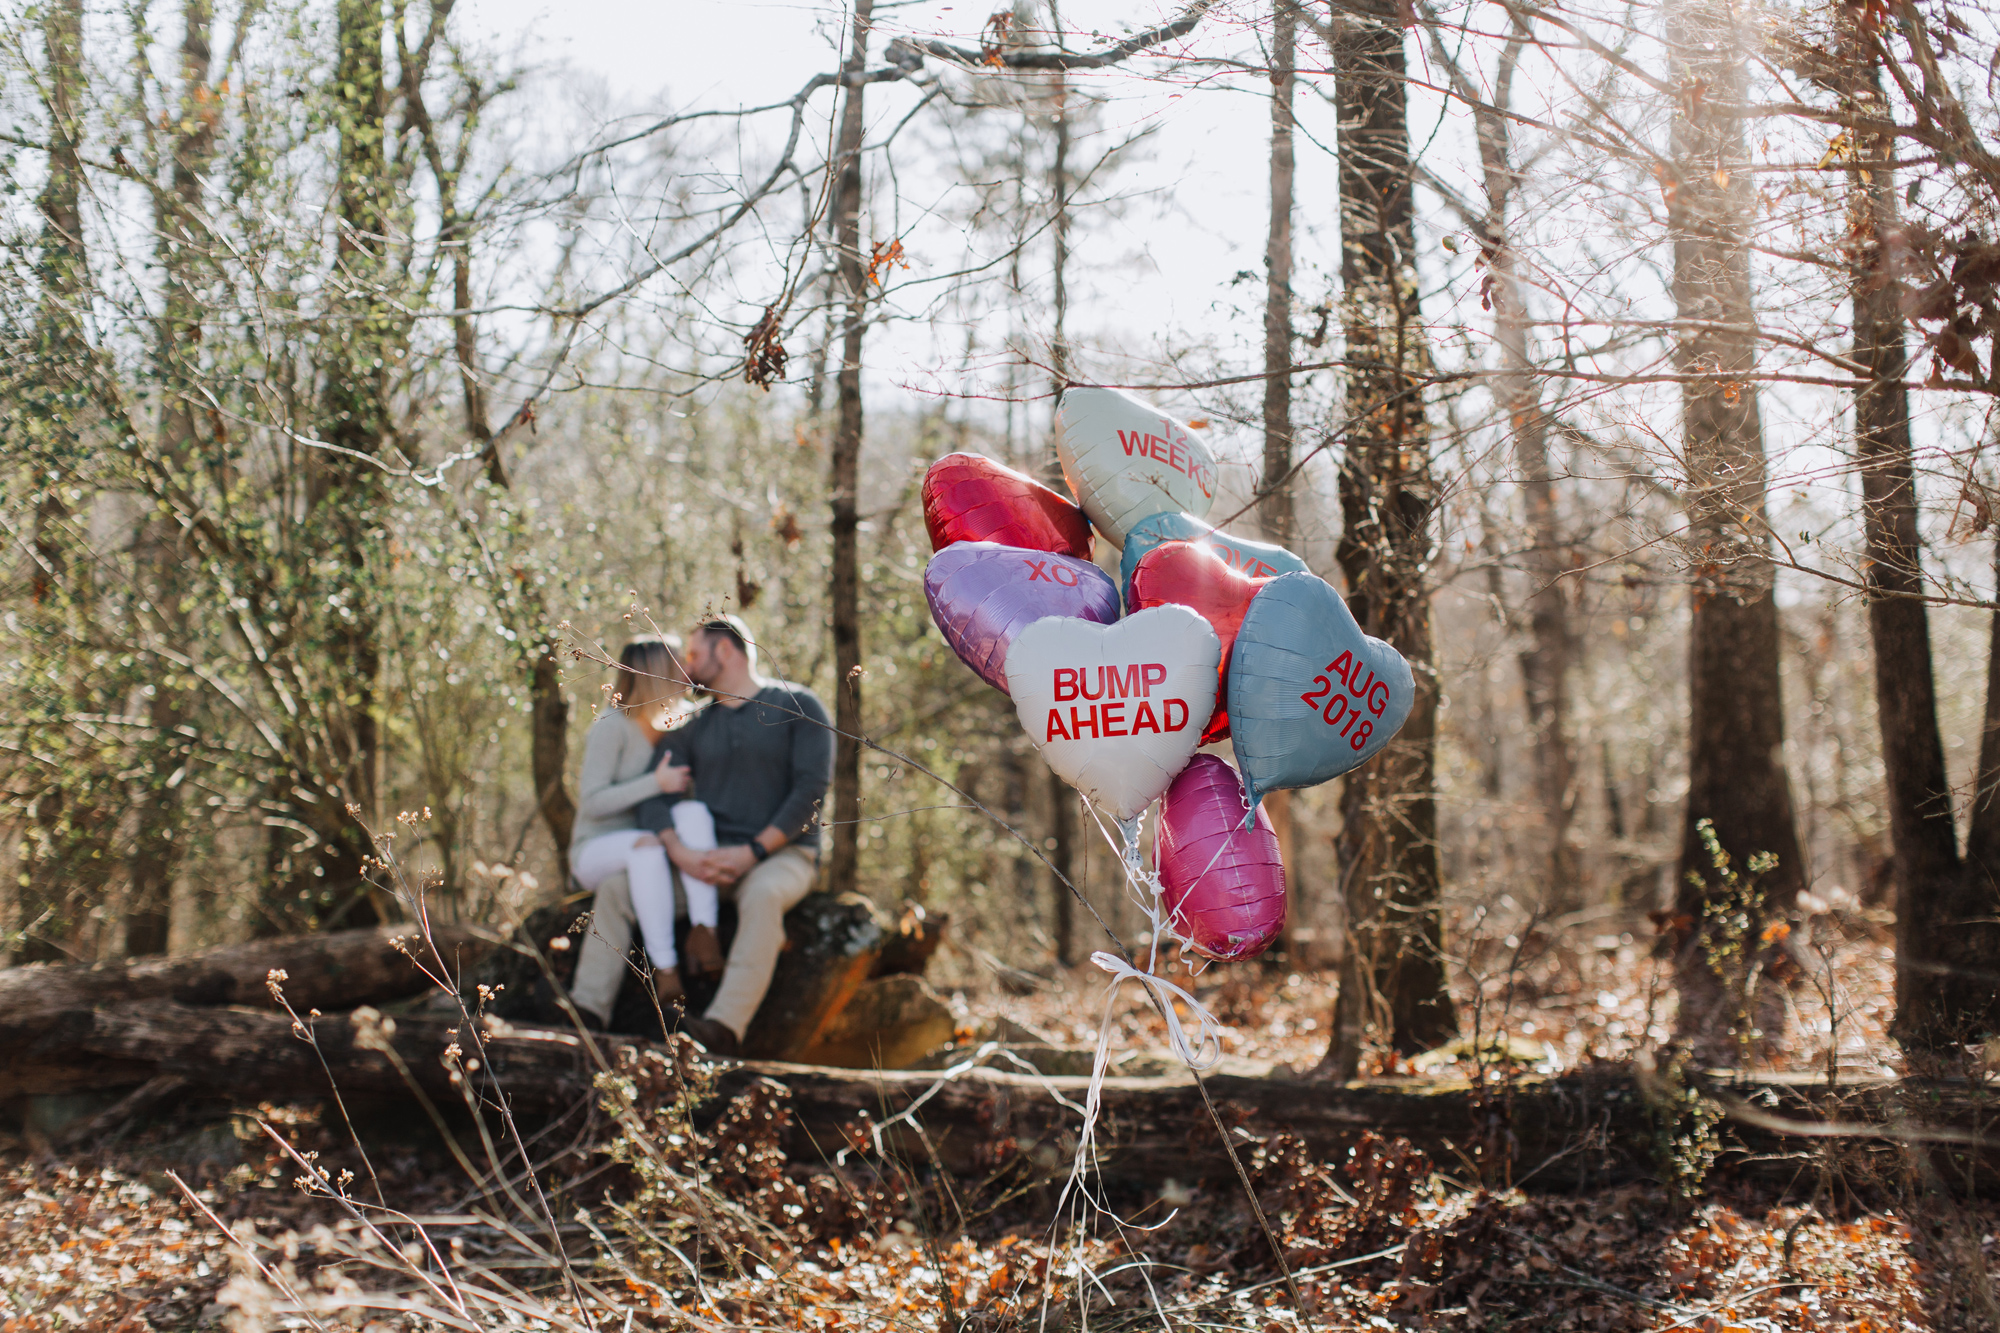 008-pregnancy-announcement-with-balloons.jpg